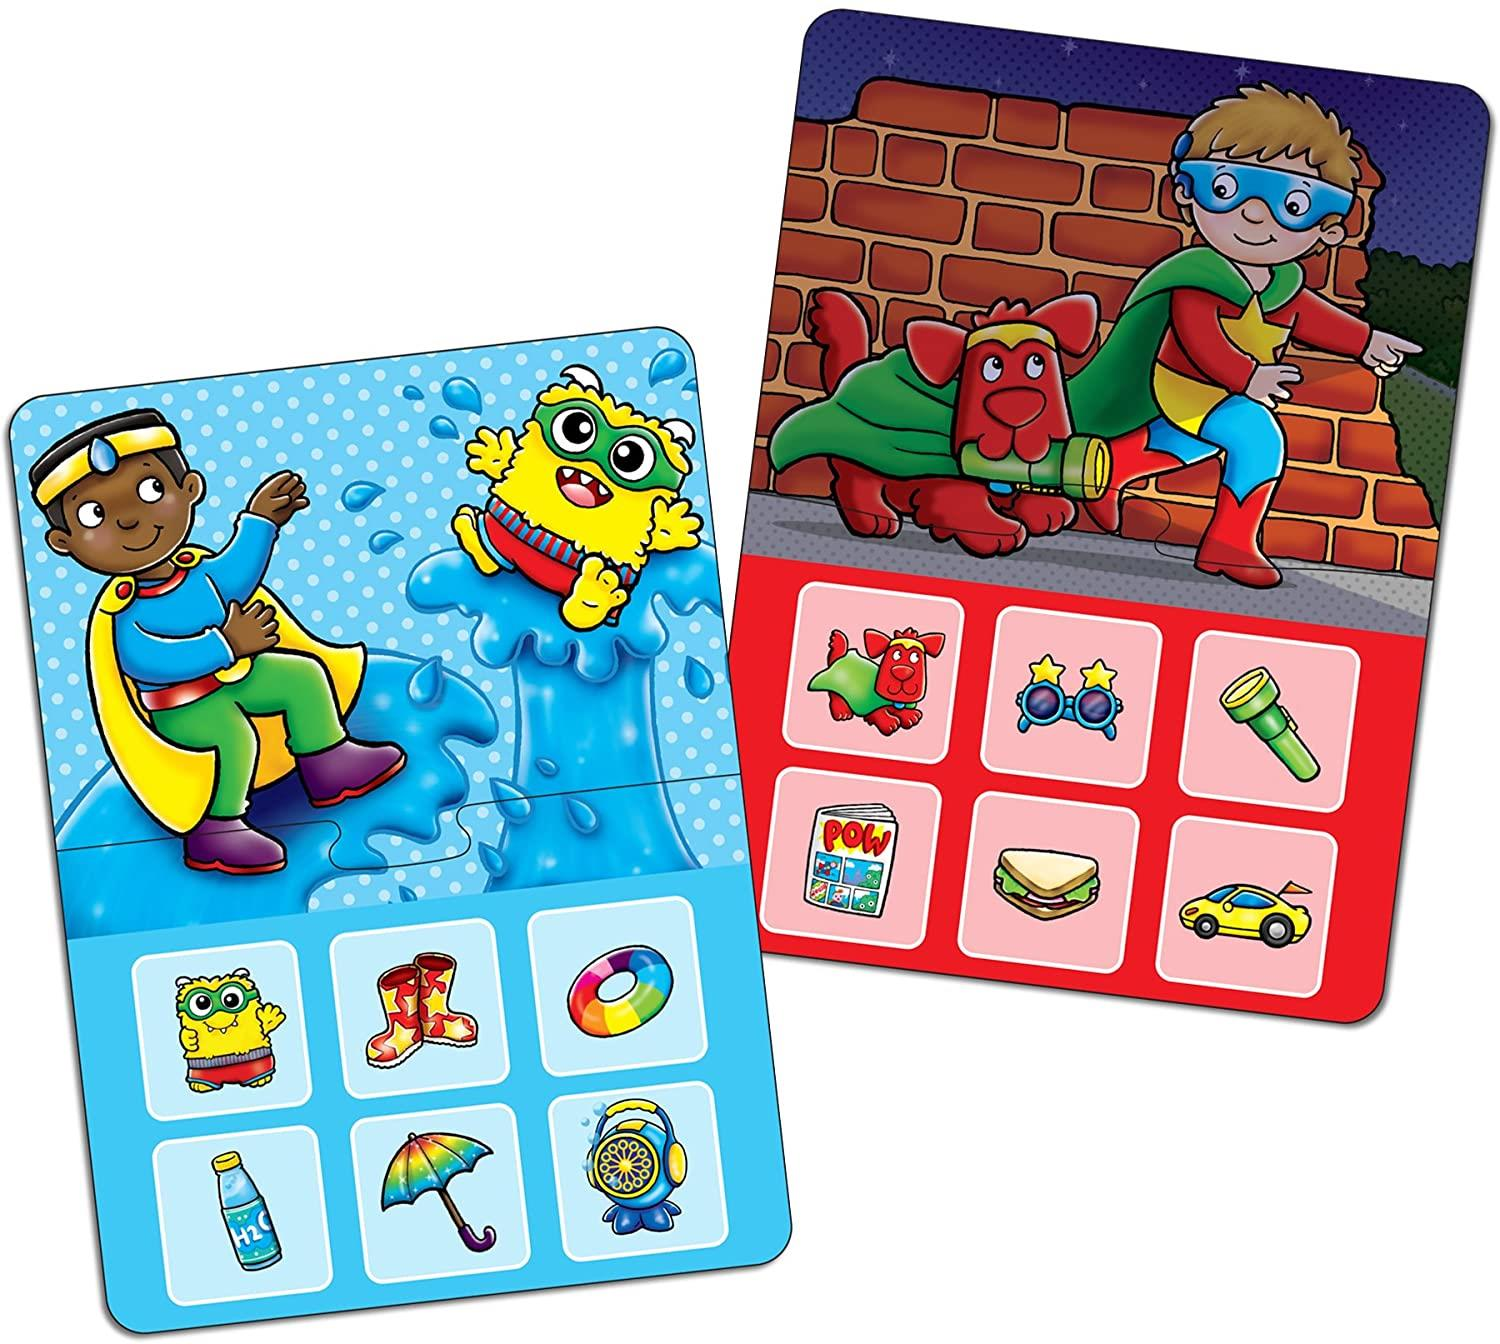 thumbnail 288 - Orchard Toys Educational Games For Kids Choose Game From Drop Down Menu